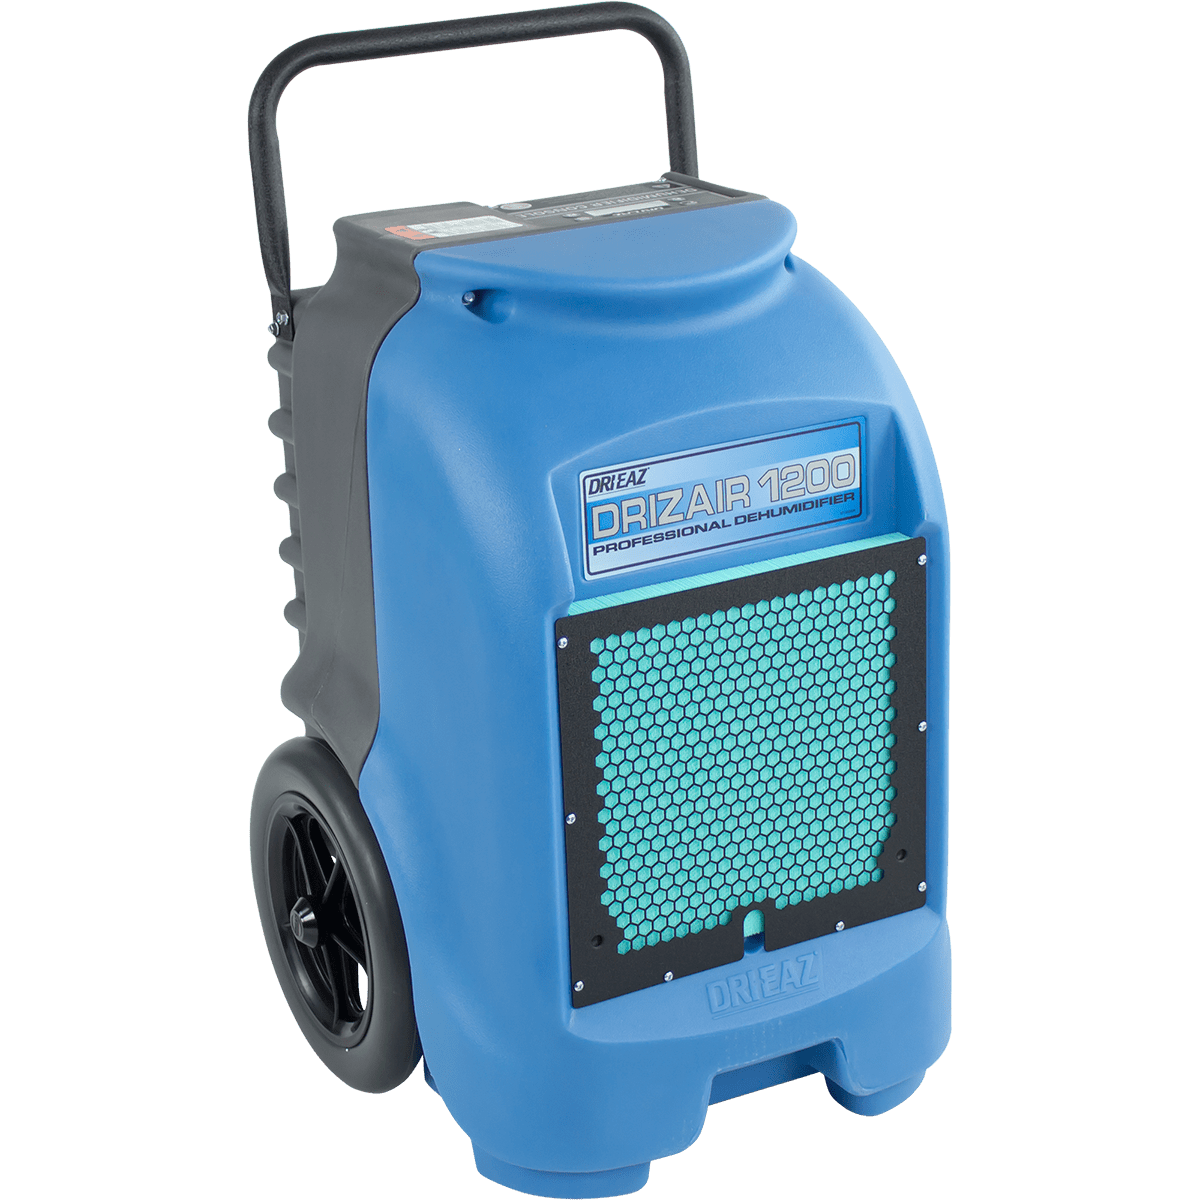 Best commercial dehumidifiers for basements